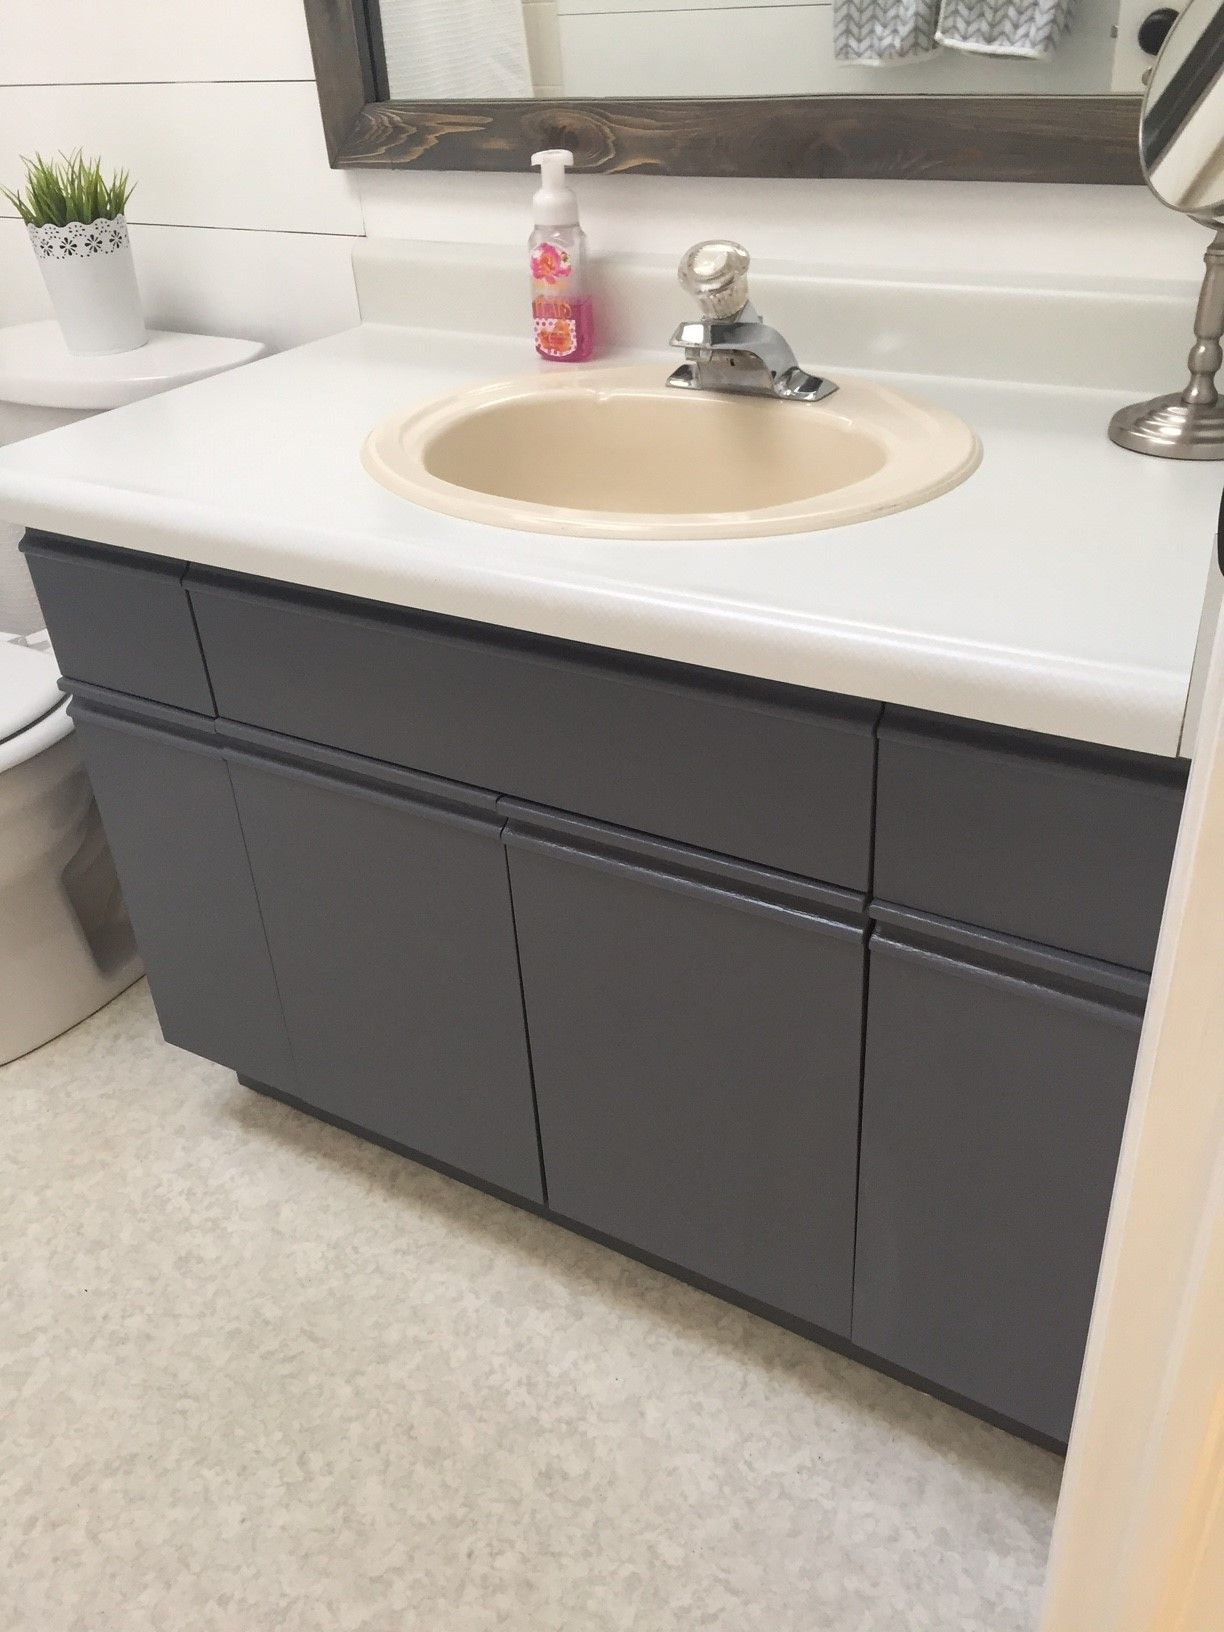 How To Update Laminate Kitchen Cabinets Bathroom Update 43 How To Paint Laminate Cabinets